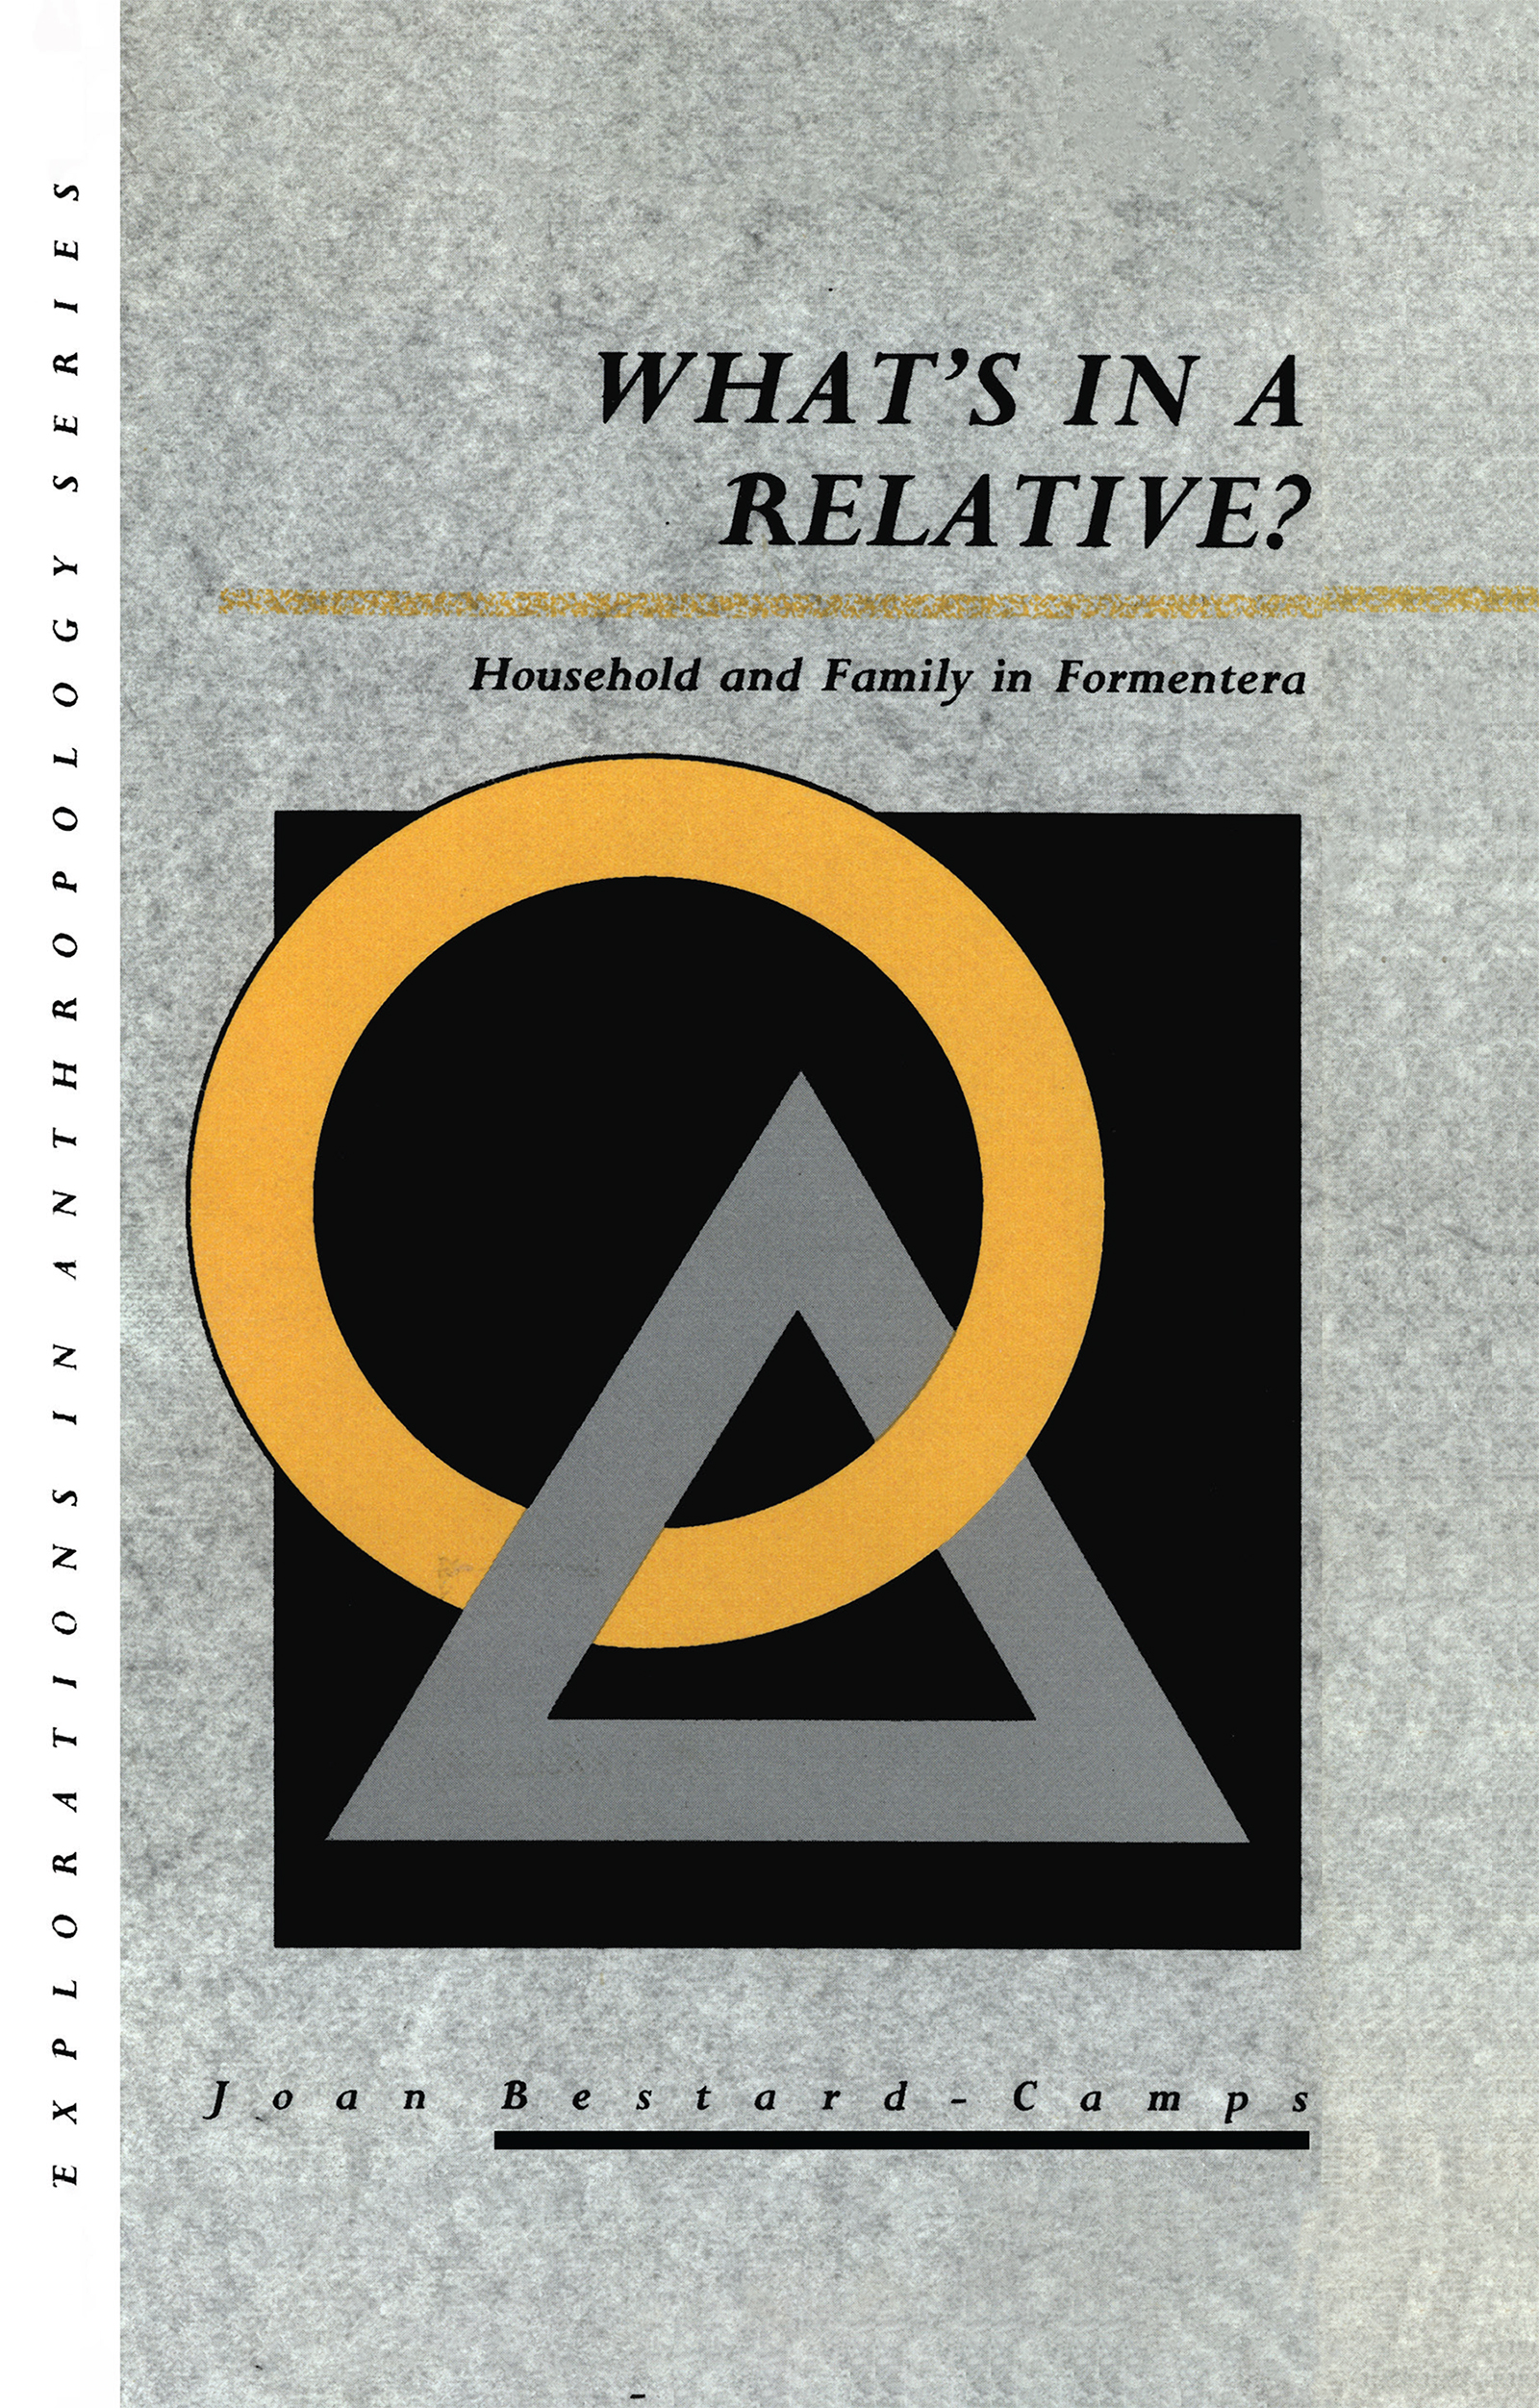 What's In a Relative?